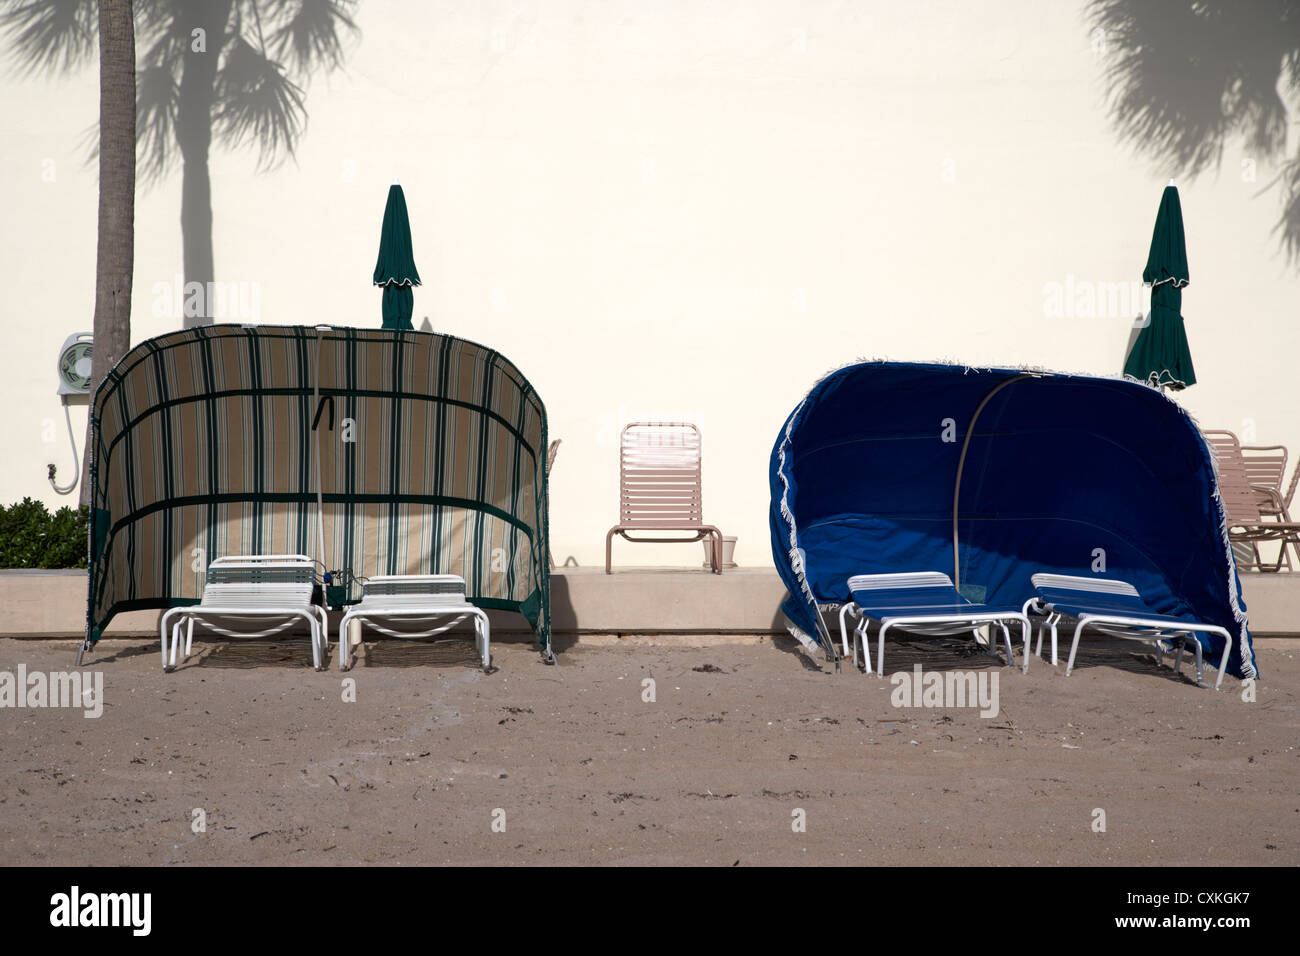 empty temporary beach cabanas sunshades on fort lauderdale beach florida usa - Stock Image